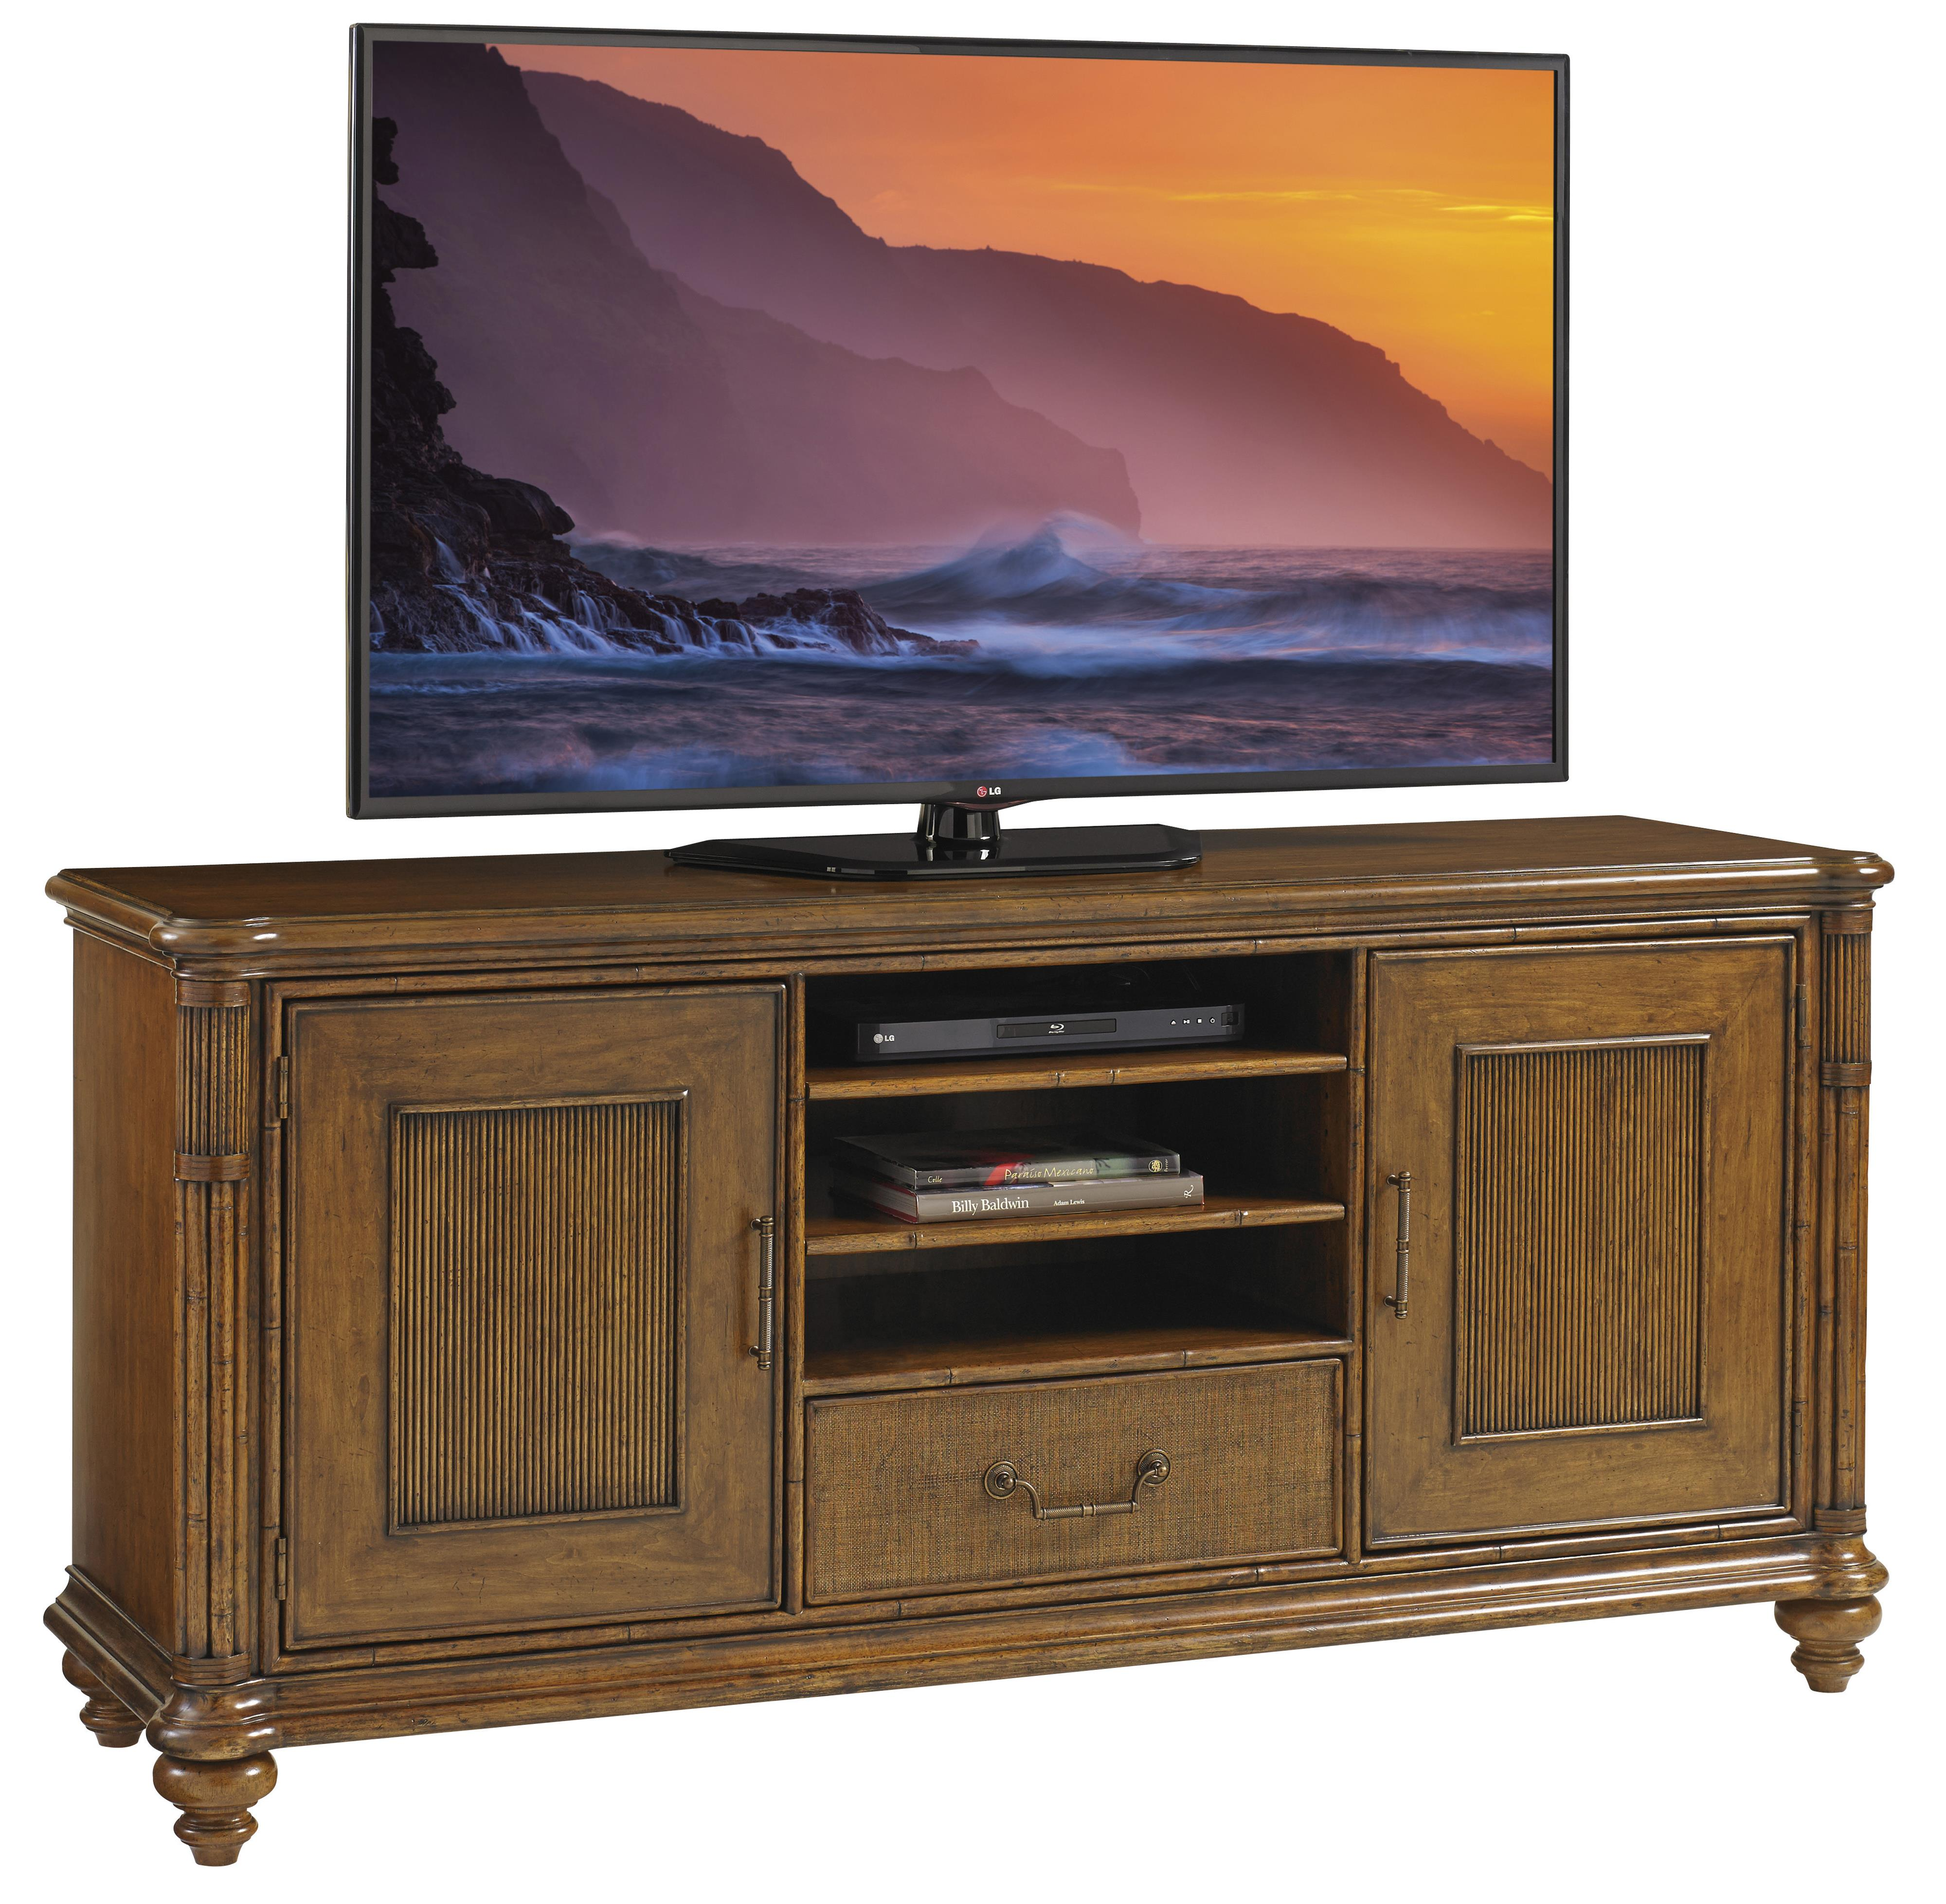 Bali Hai Pelican Cay Media Console by Tommy Bahama Home at Baer's Furniture